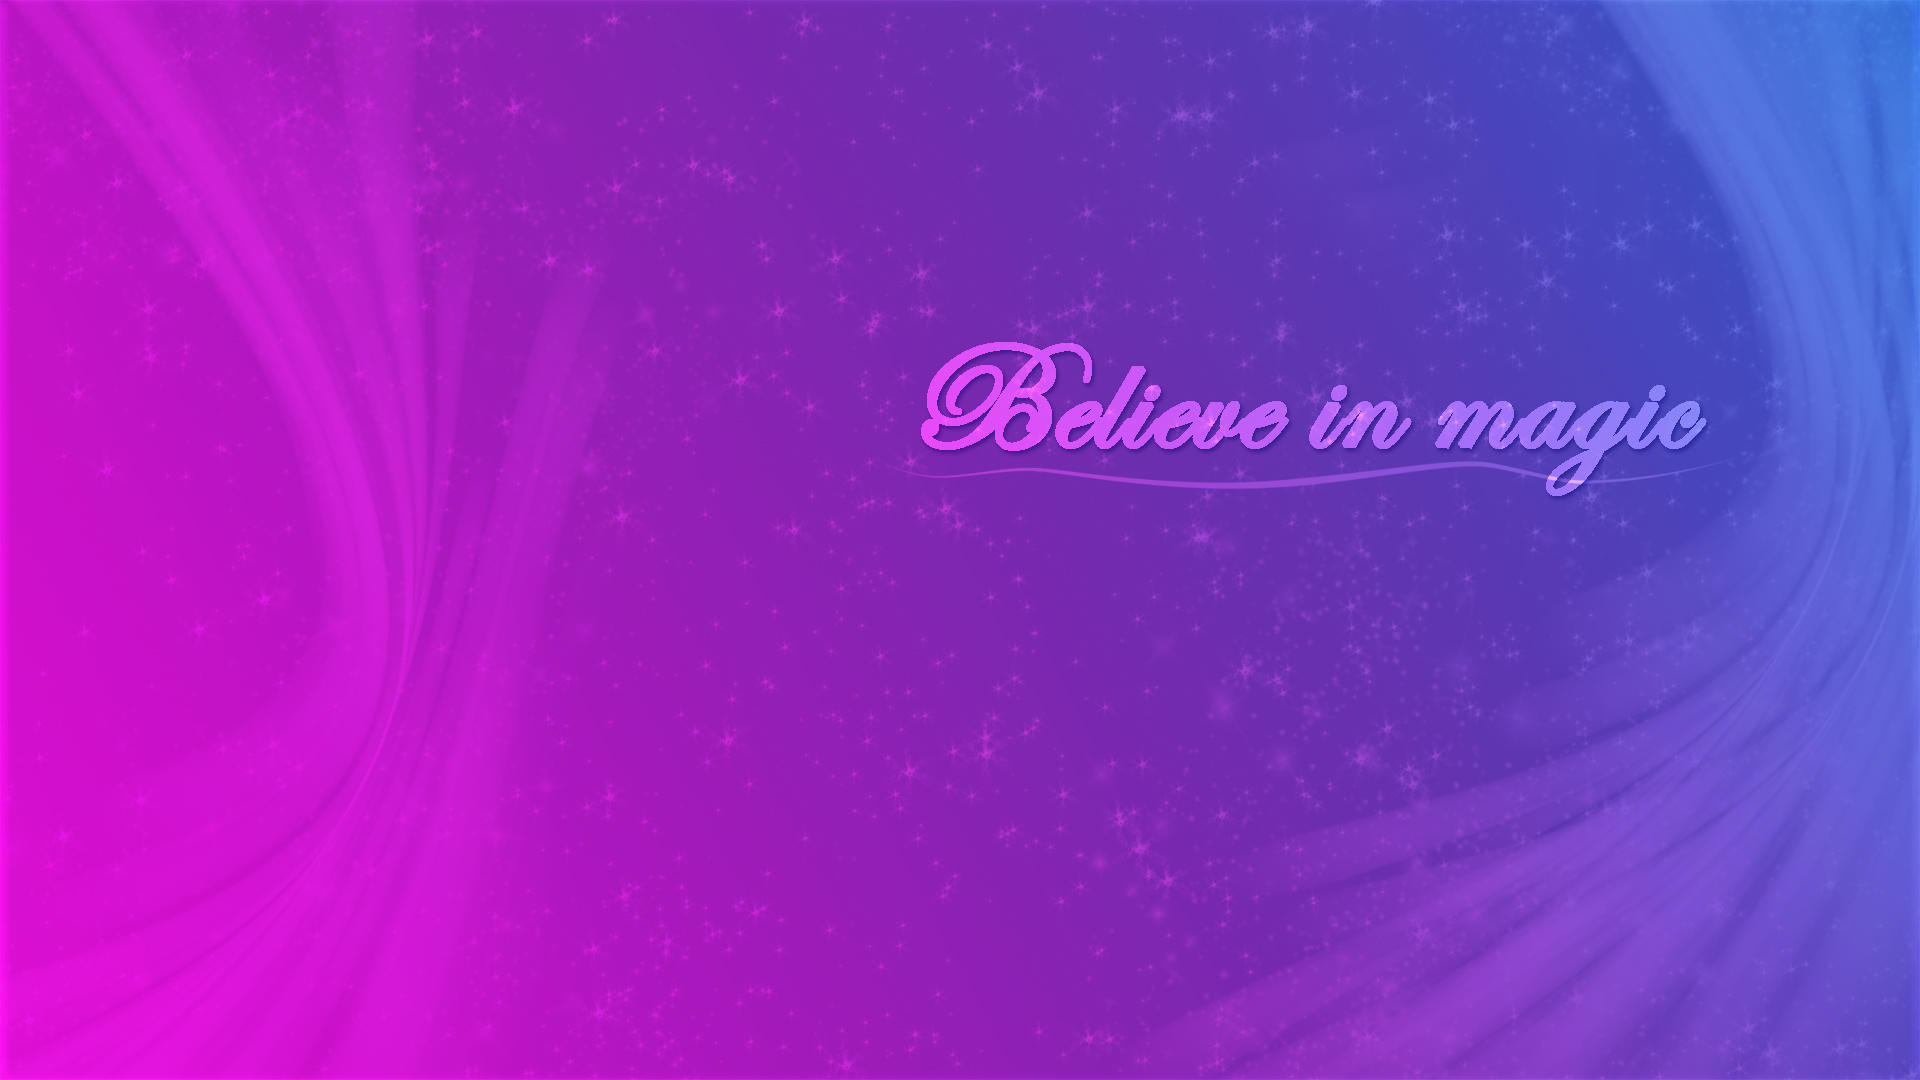 Wallpaper Think Different Quotes Believe In Magic Wallpaper By Toreshii Chann On Deviantart